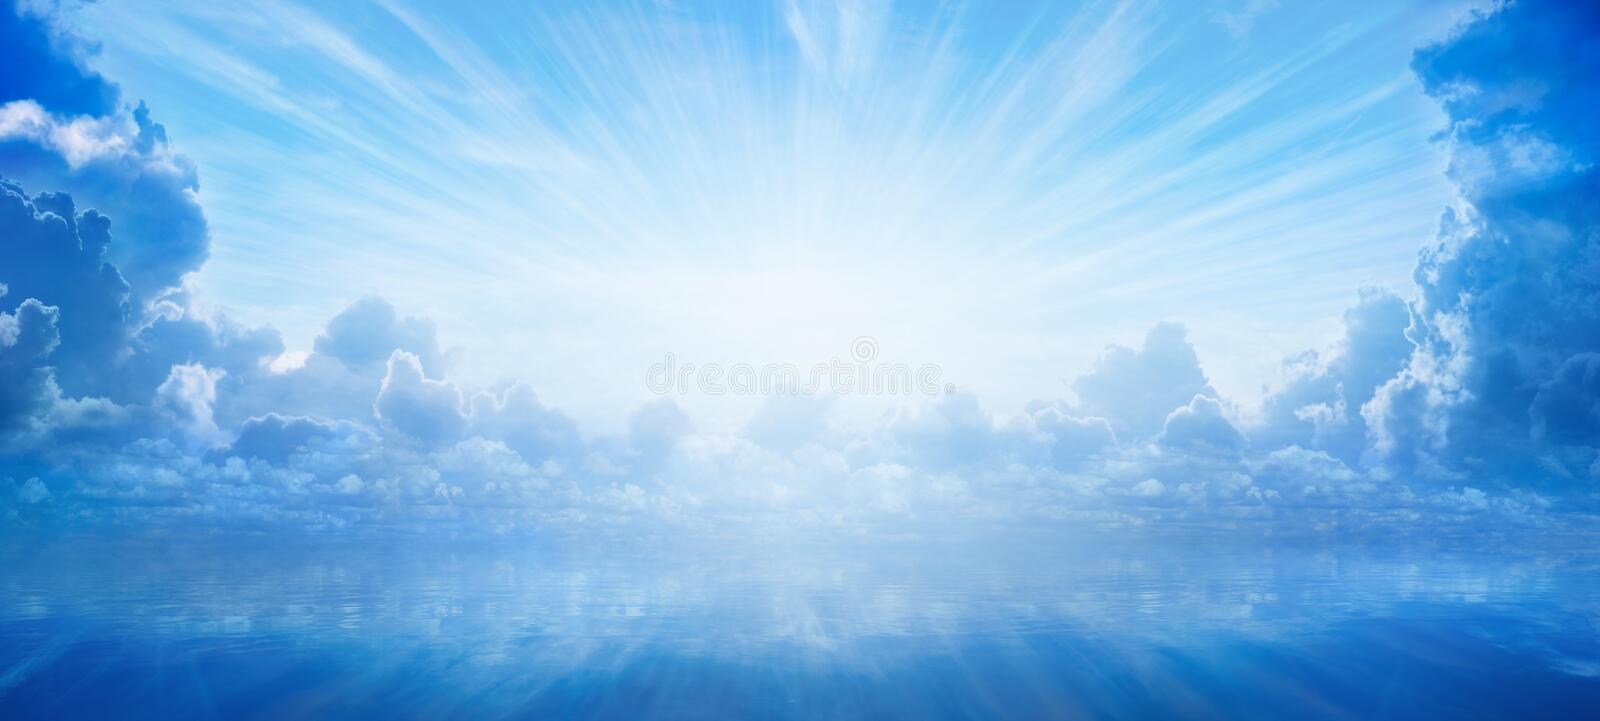 Bright light from heaven, light of hope and happyness from skies royalty free stock photography